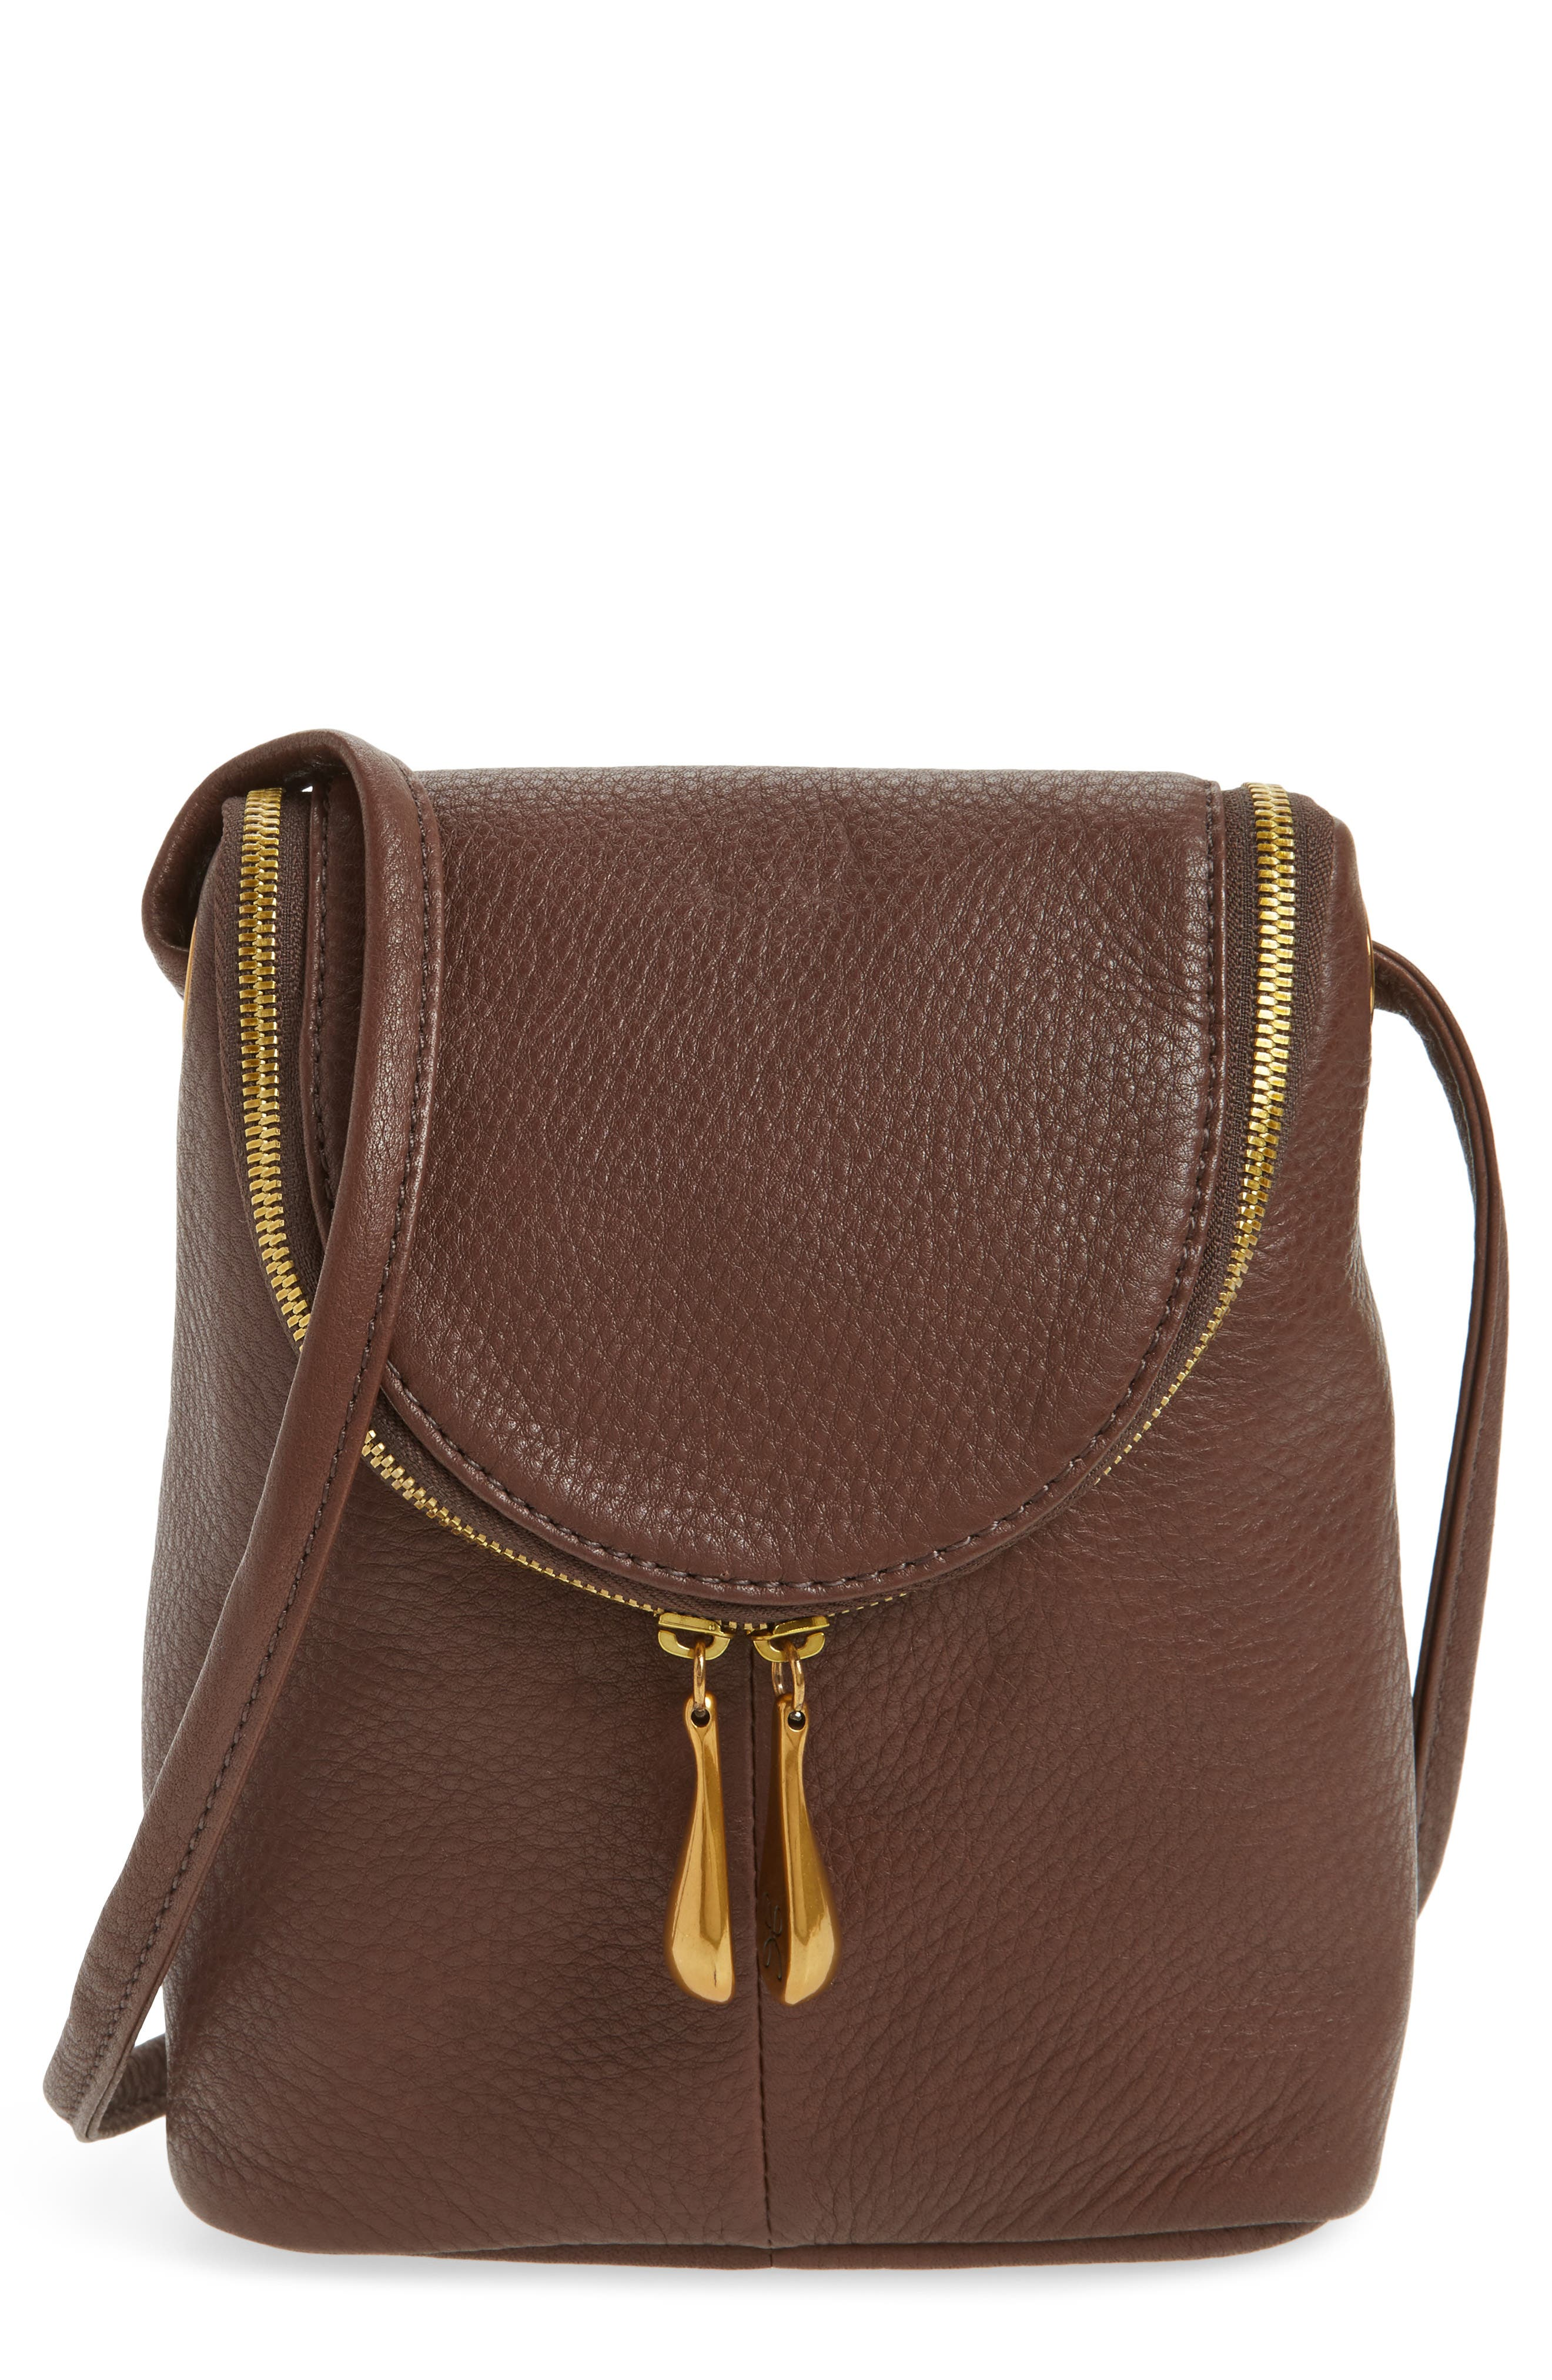 Hobo Fern Calfskin Leather Saddle Bag